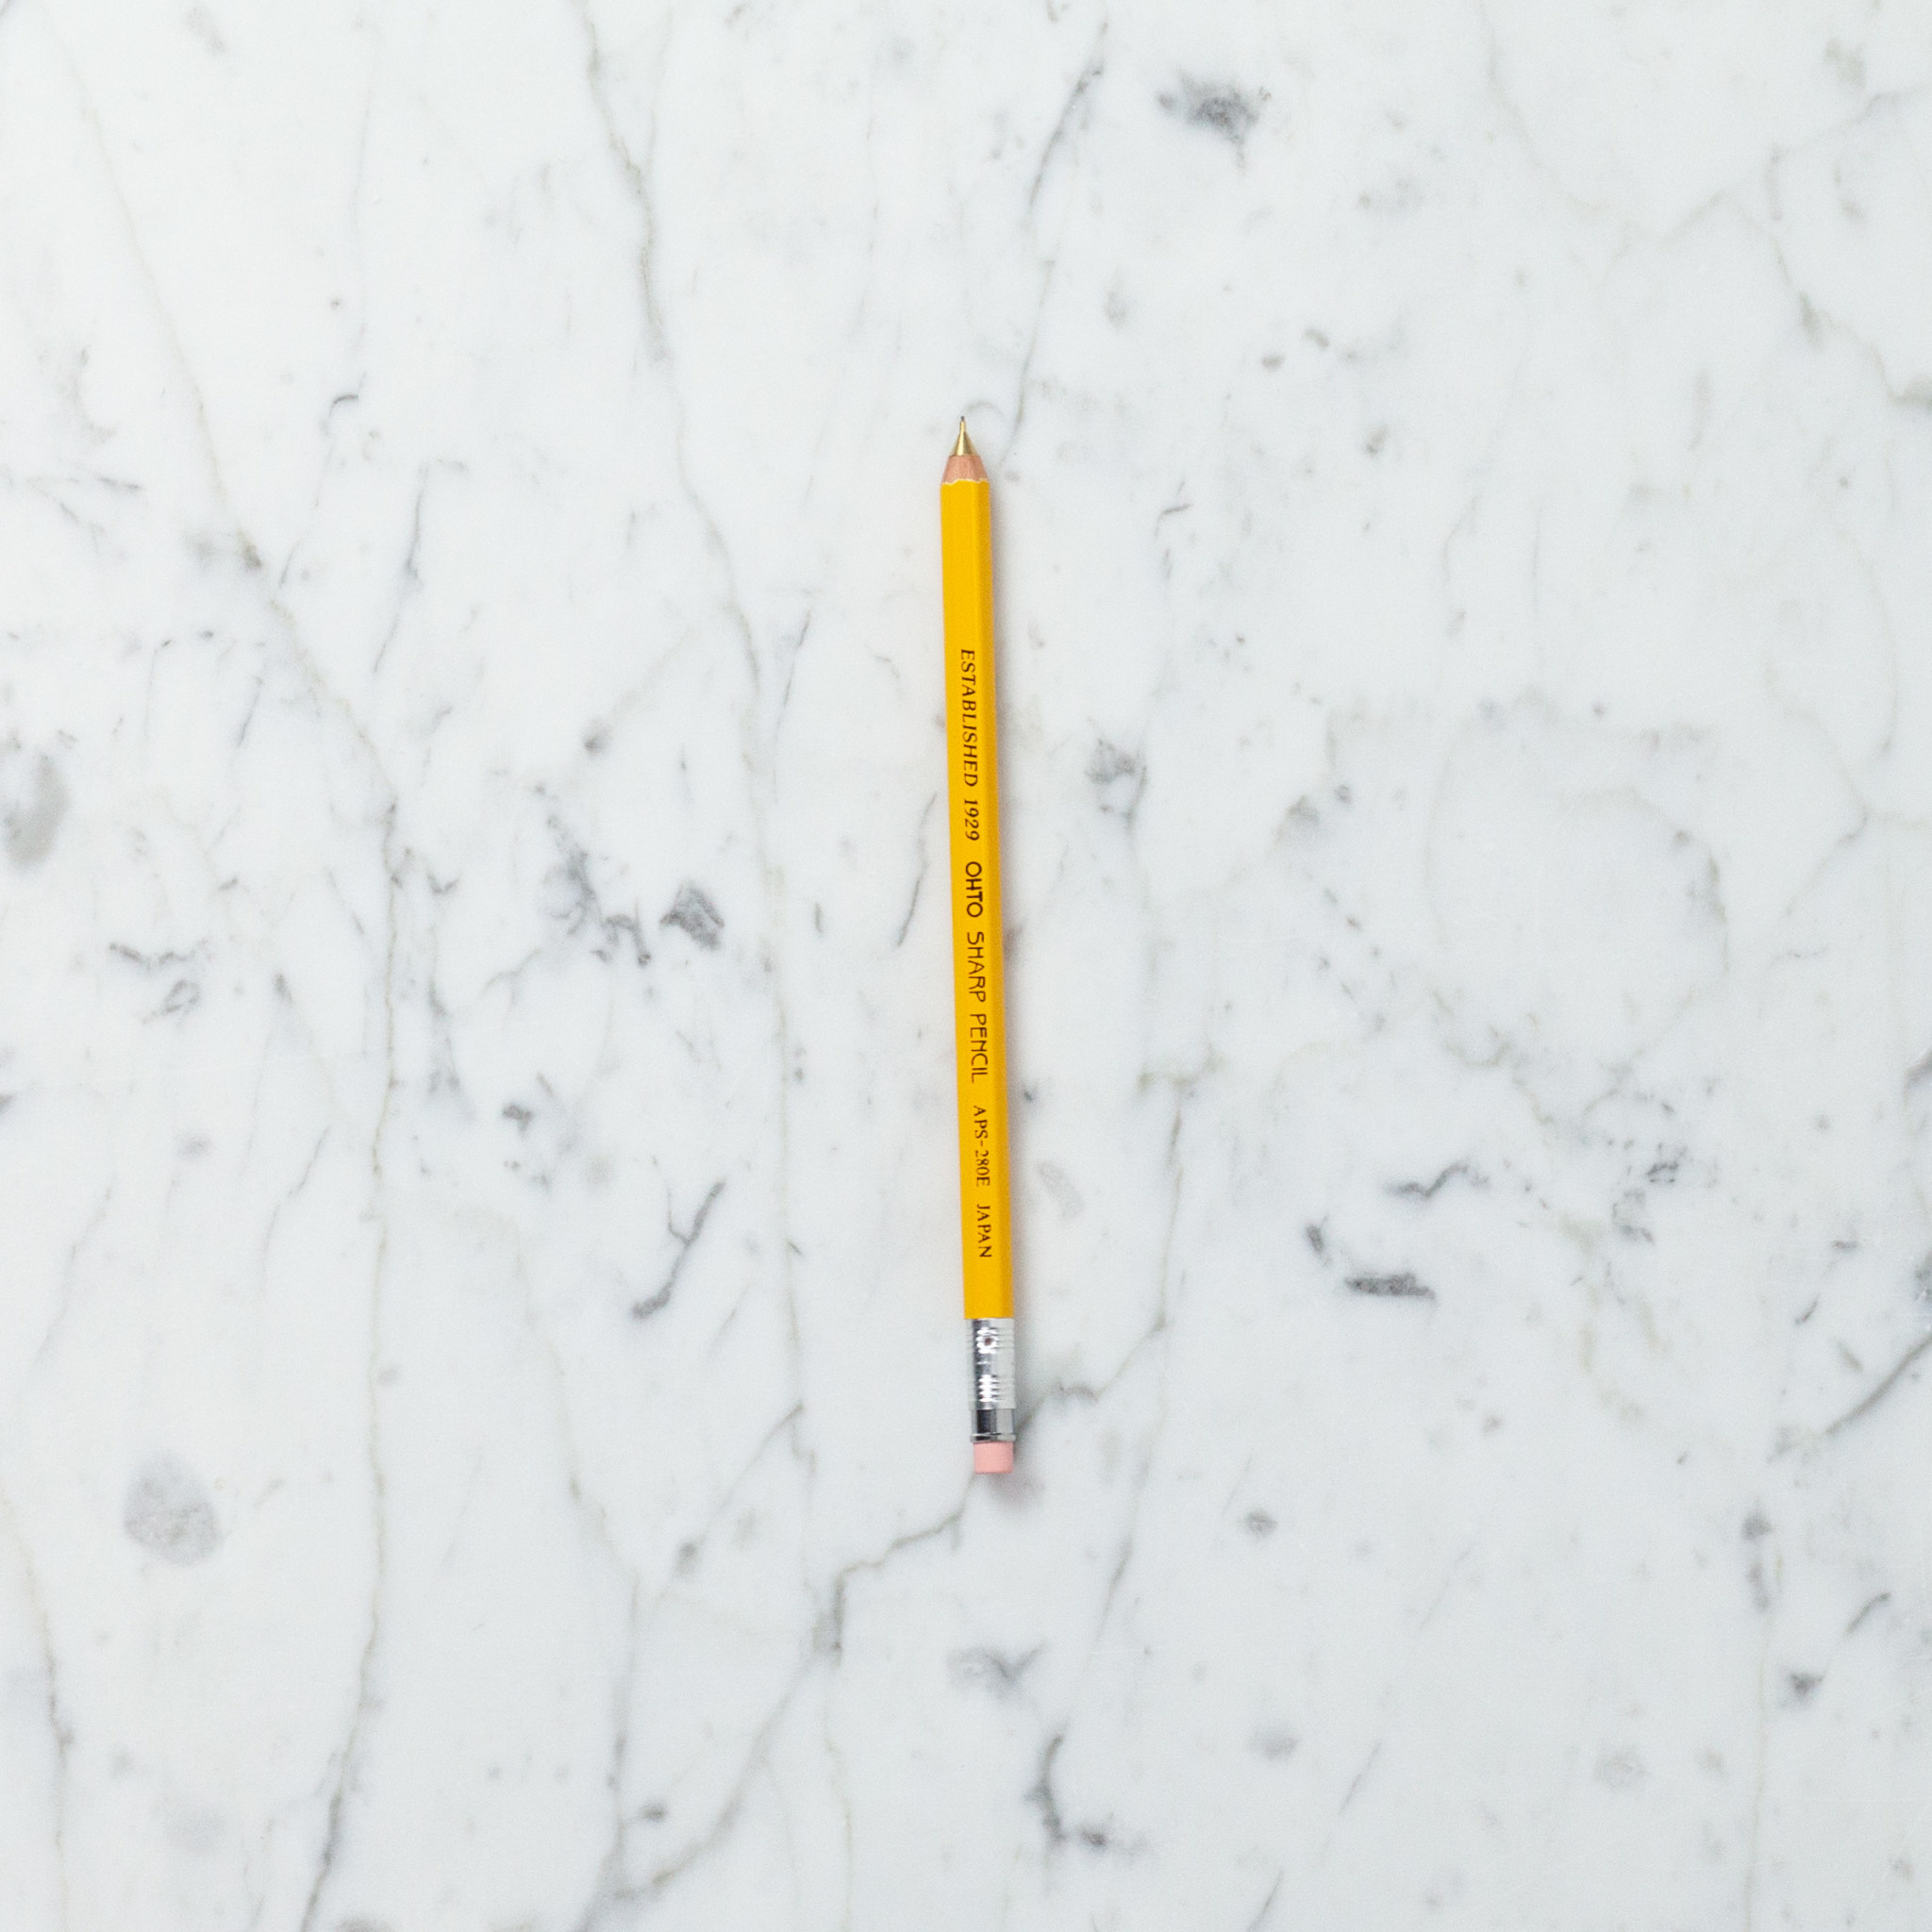 Ohto Wooden Mechanical Pencil - Slim - Yellow